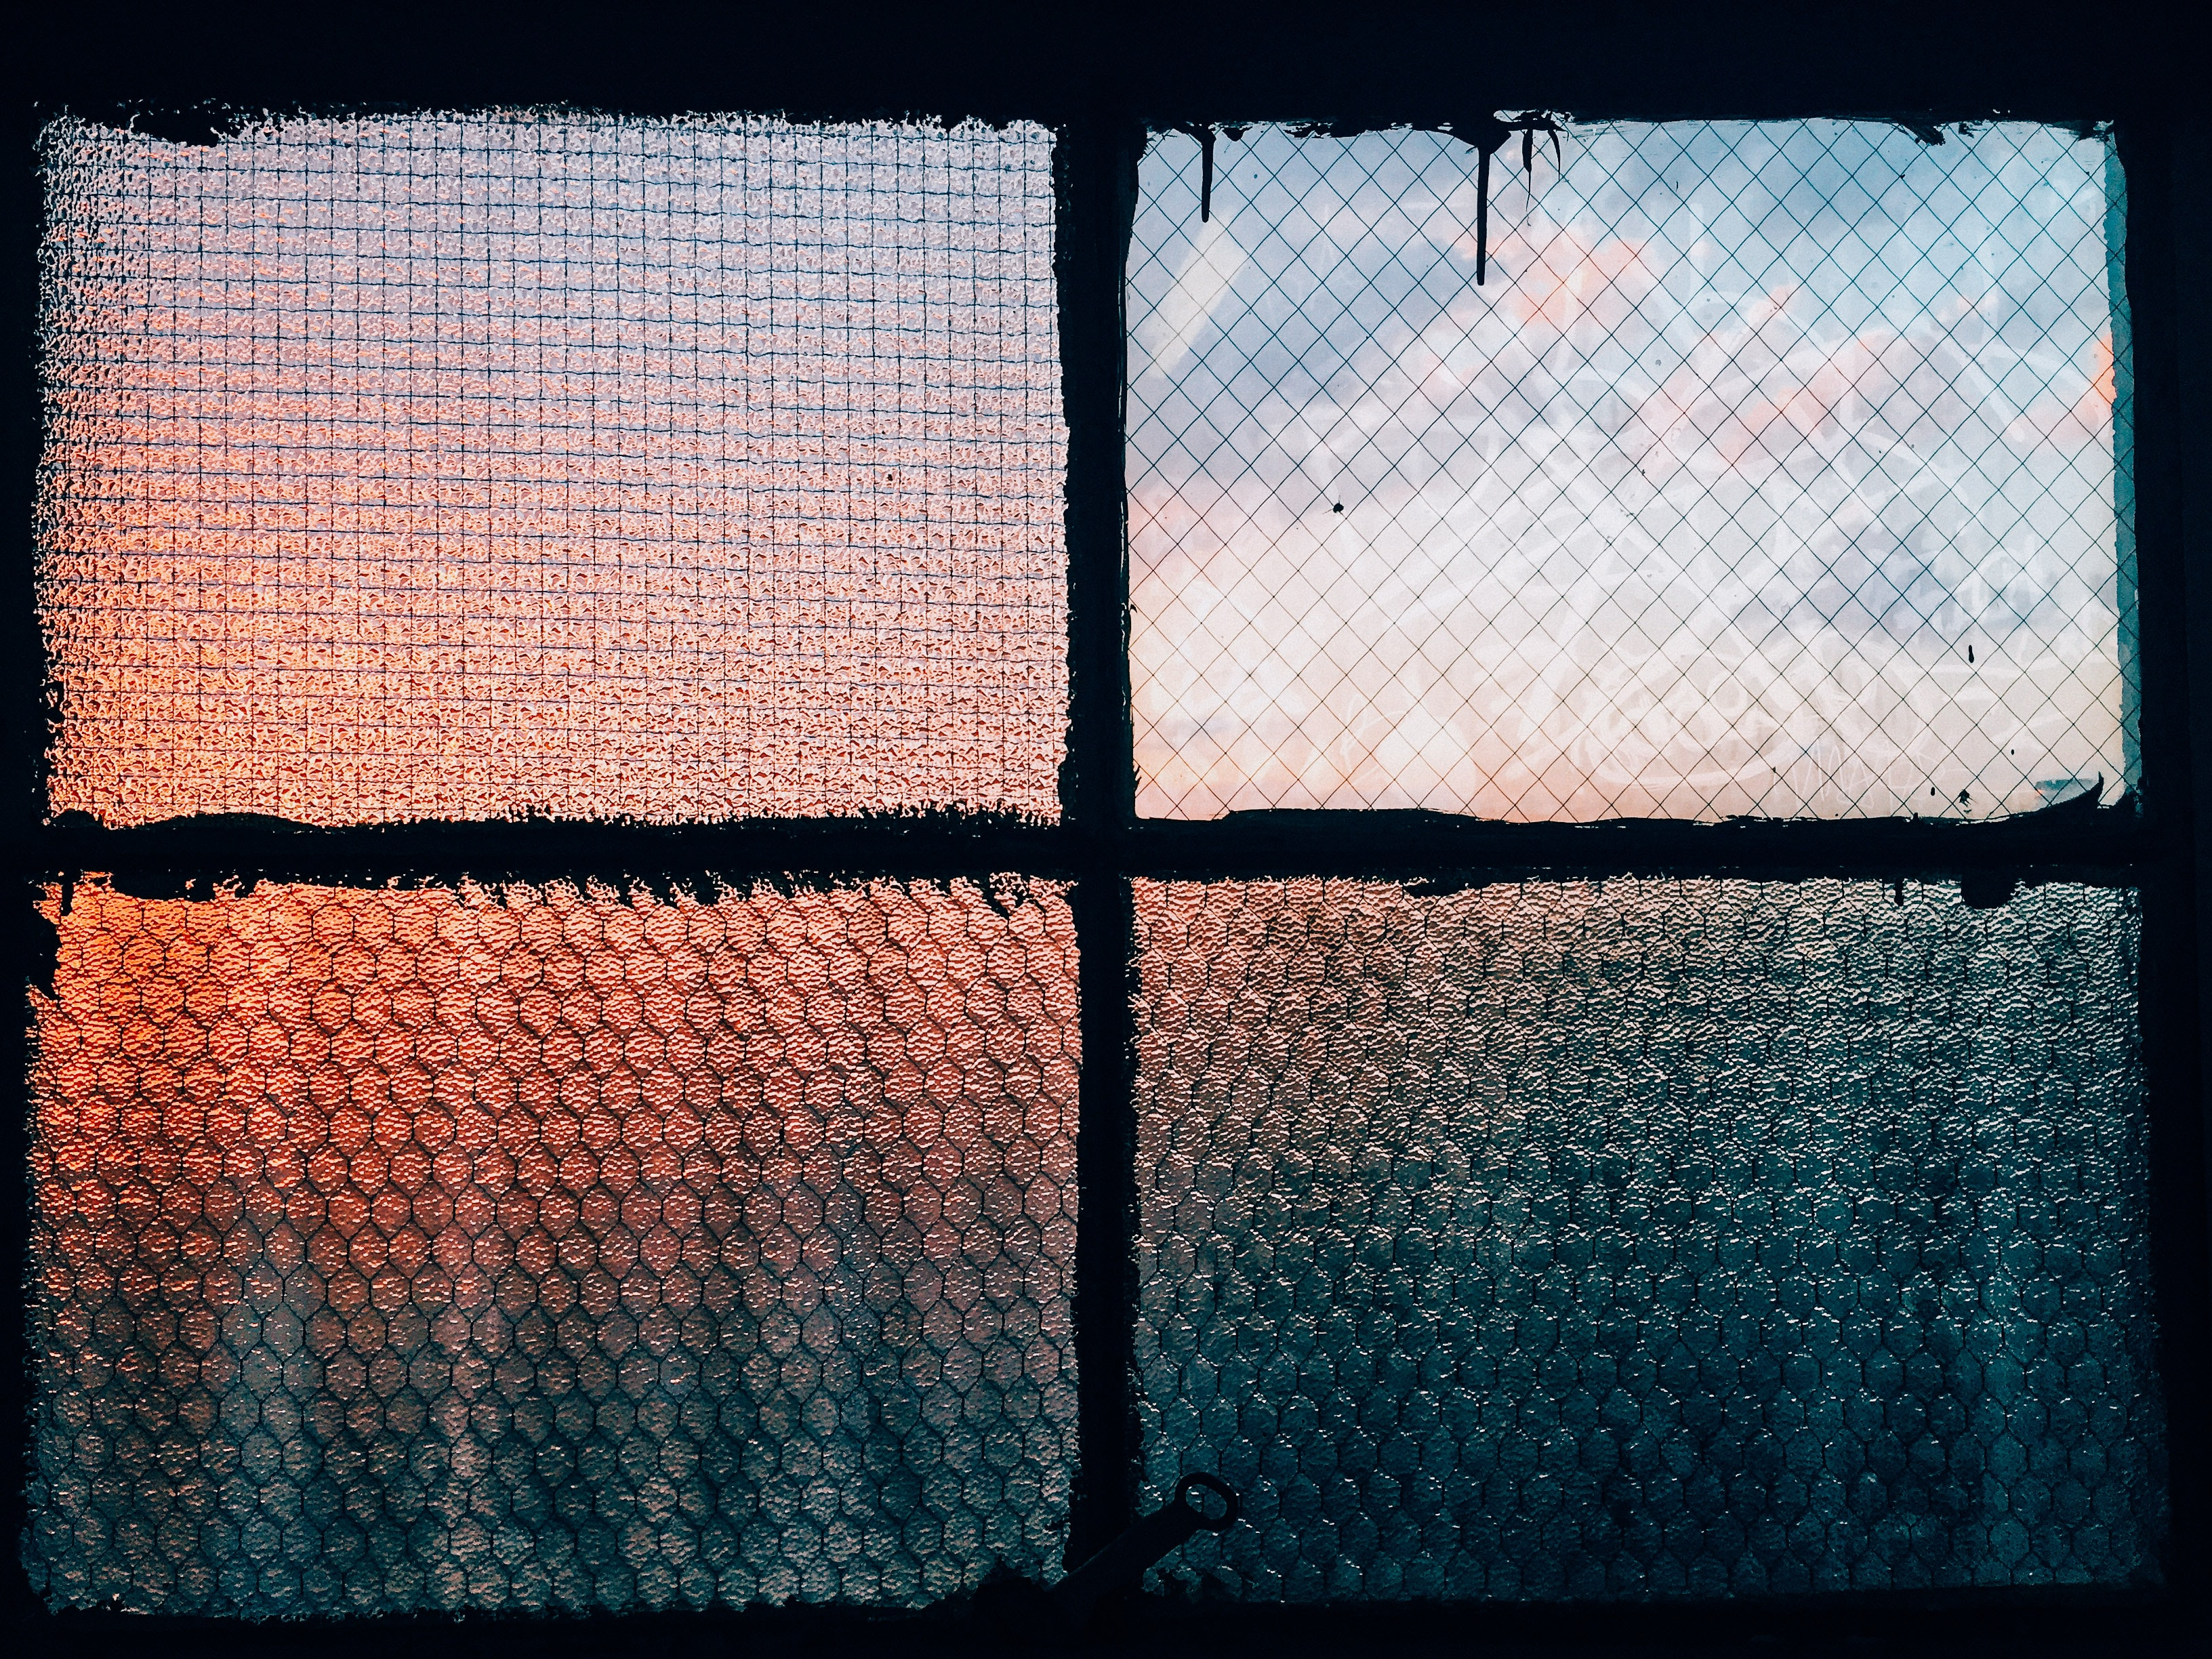 Textured sunset through the frosted window panes in Flatbush